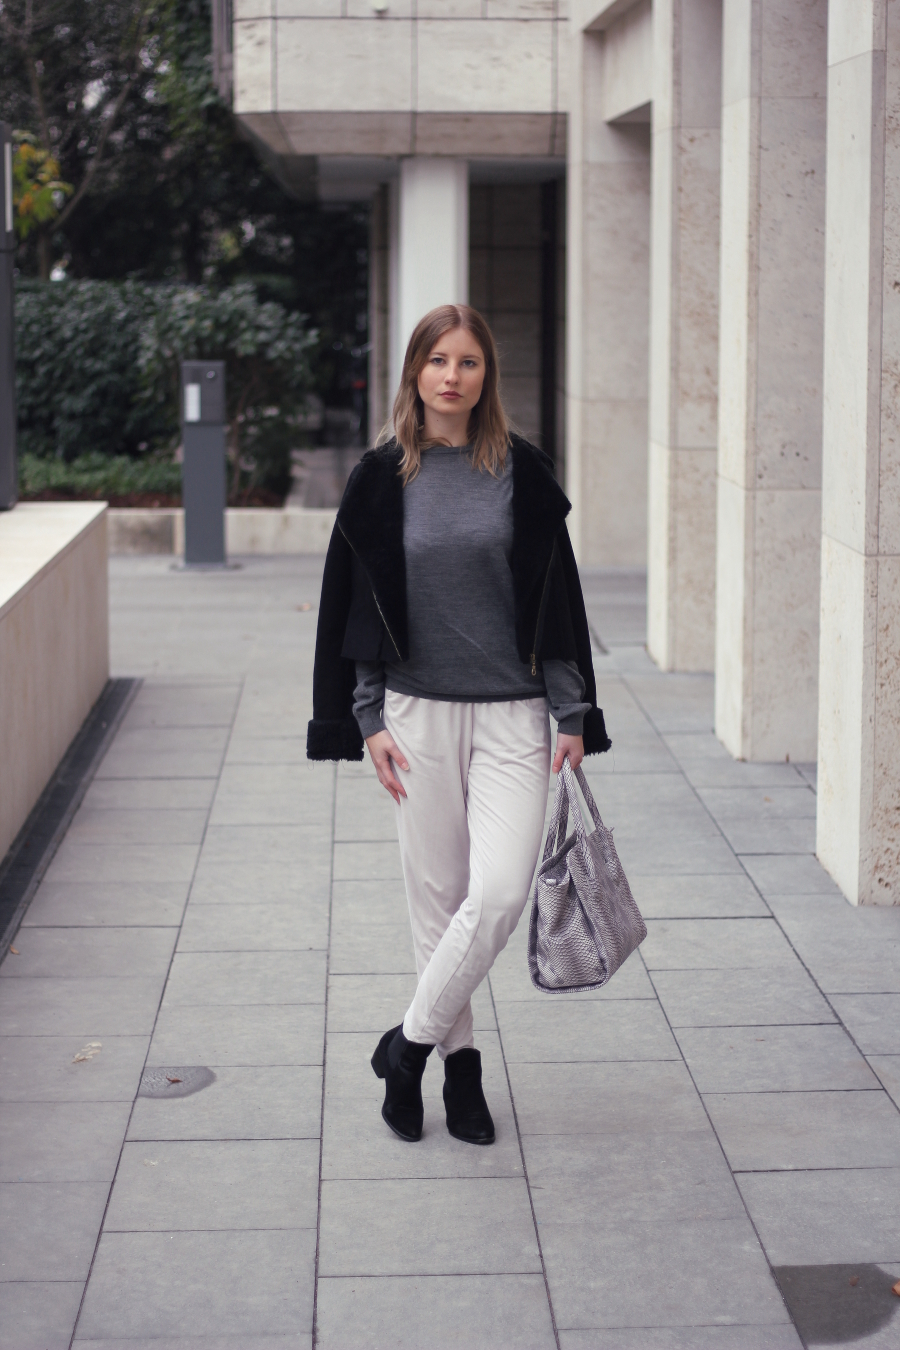 outfit loose fit trousers beige grey black chill look city ffm westend blogger woman